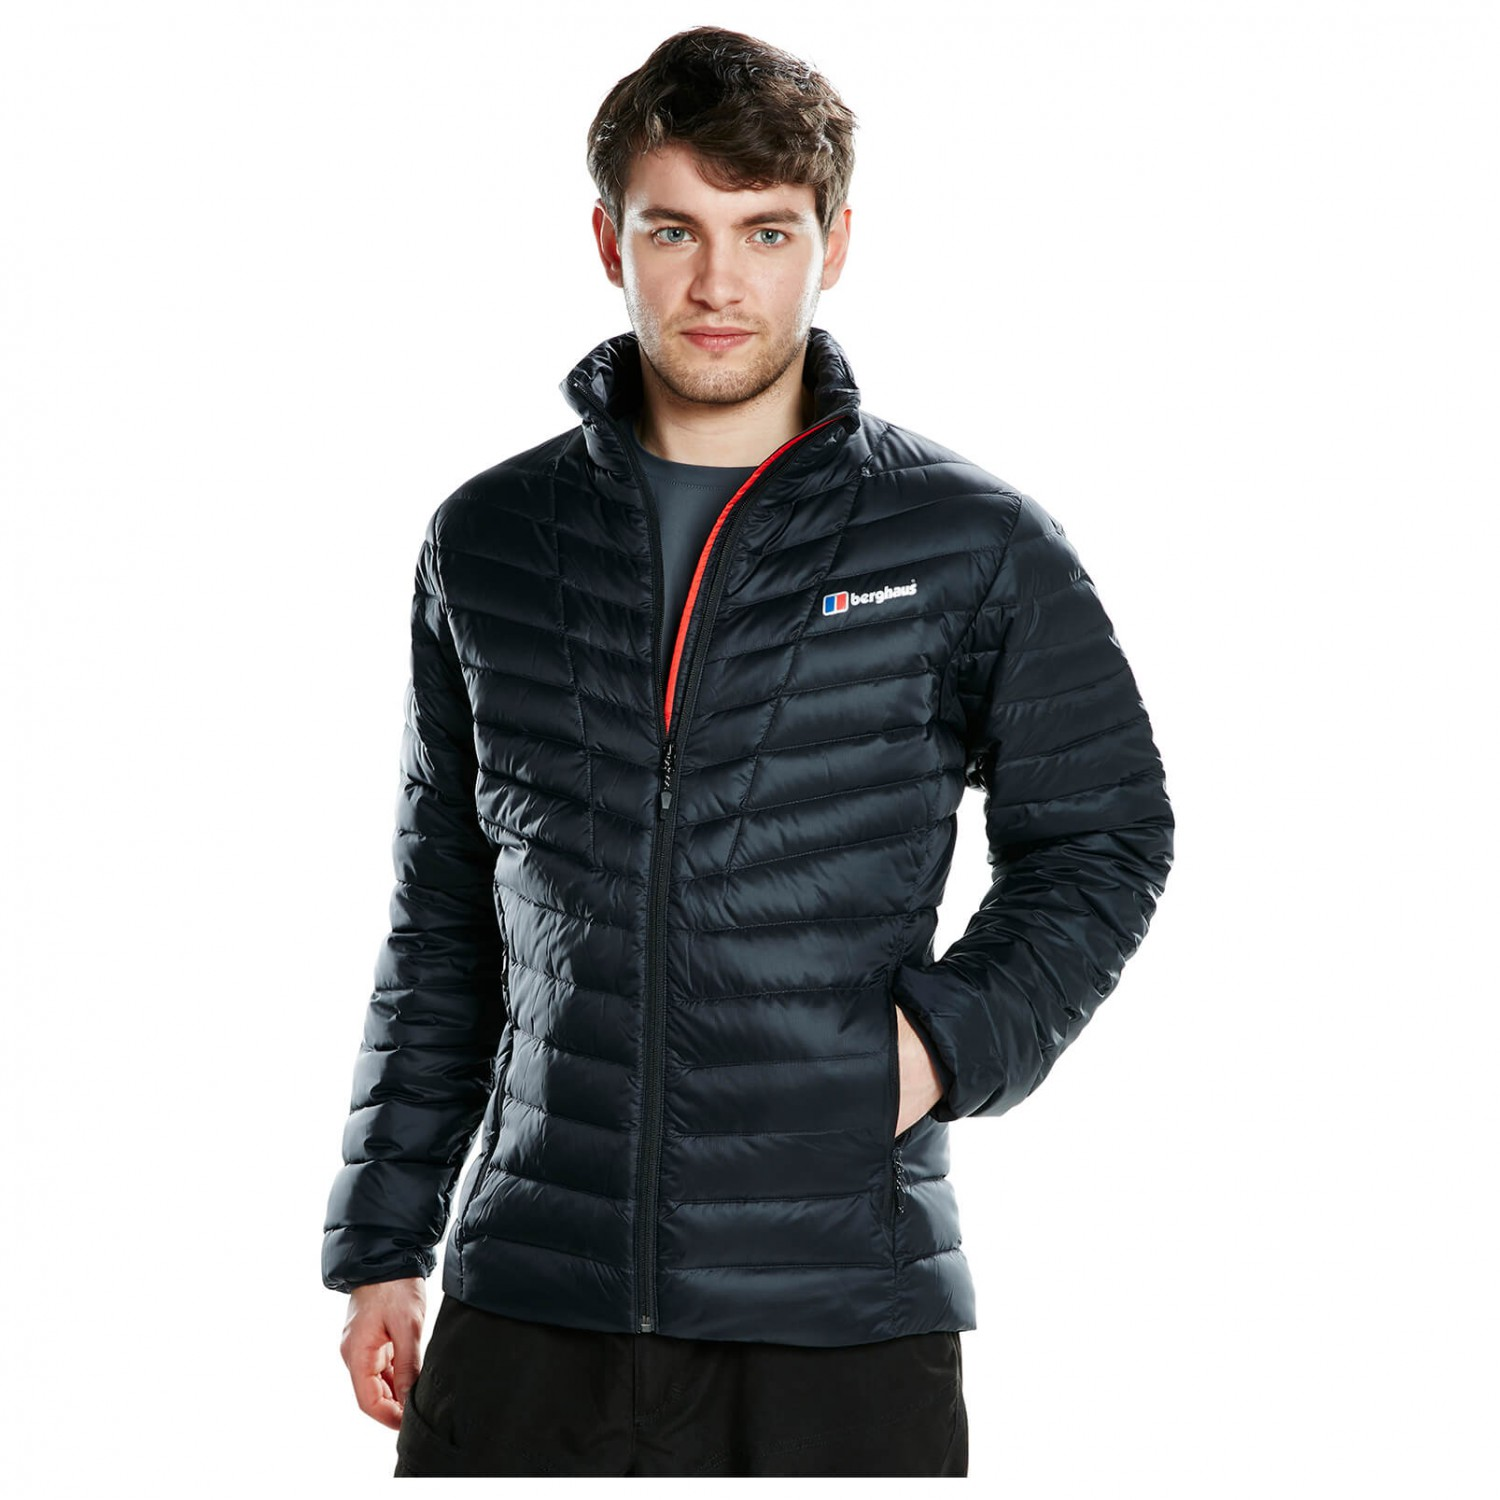 check out e6b3d fb002 Berghaus Tephra Down Jacket - Giacca in piumino Uomo ...